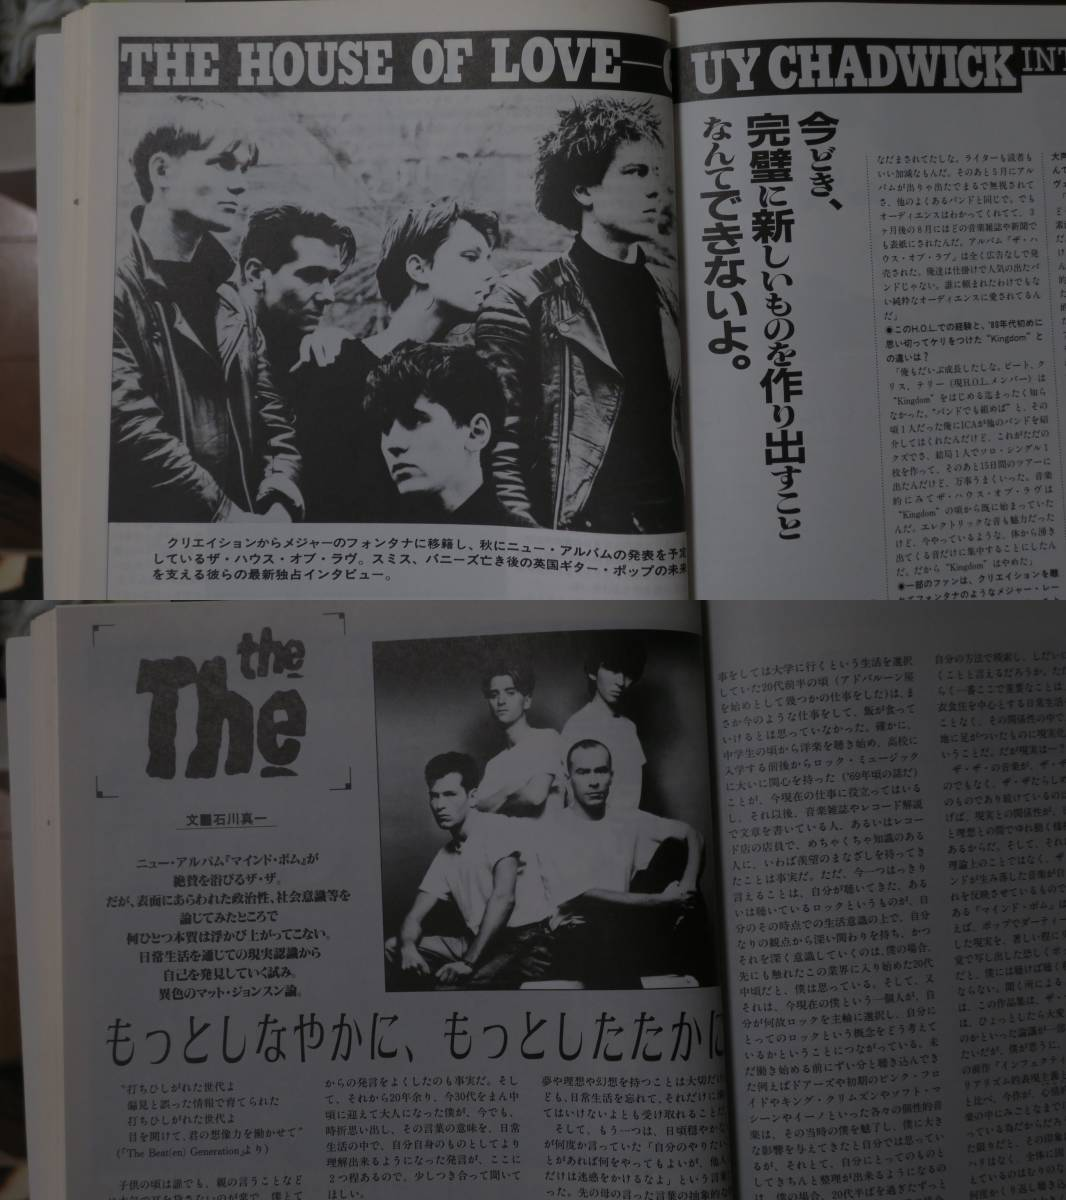 newswave21THE CURE小野島大PETE TOWNSHEND/NICK CAVE/MARK STEWART/THE HOUSE OF LOVE/Guy Chadwick/Robert Smith/THE WHO/POP GROUP/NEU!_画像5